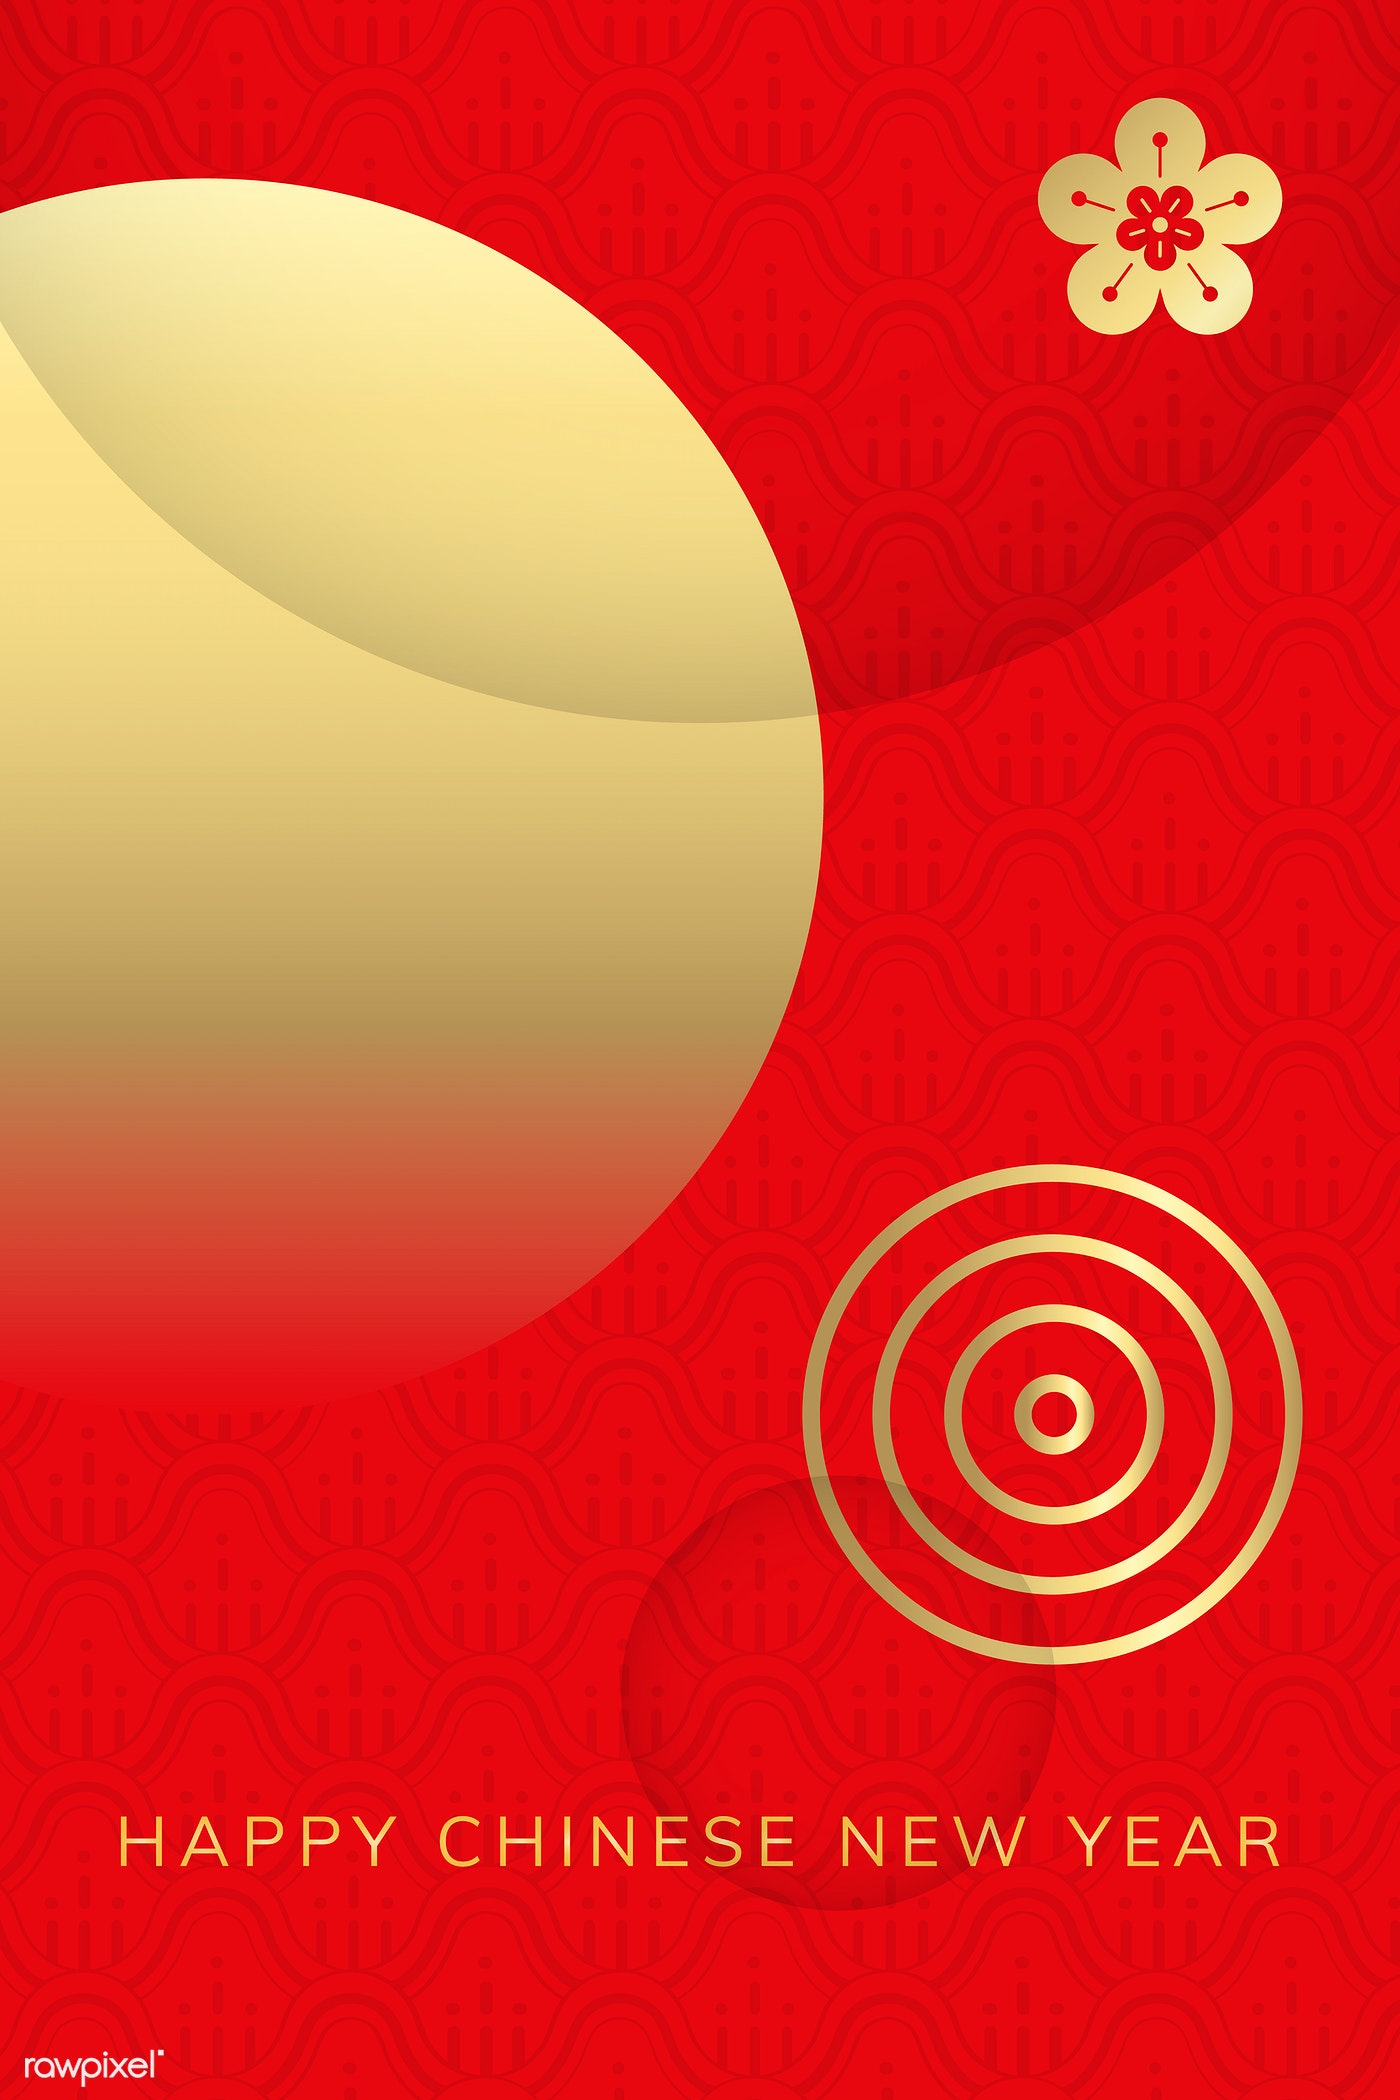 Download Premium Vector Of Happy Chinese New Year 2020 Background Vector